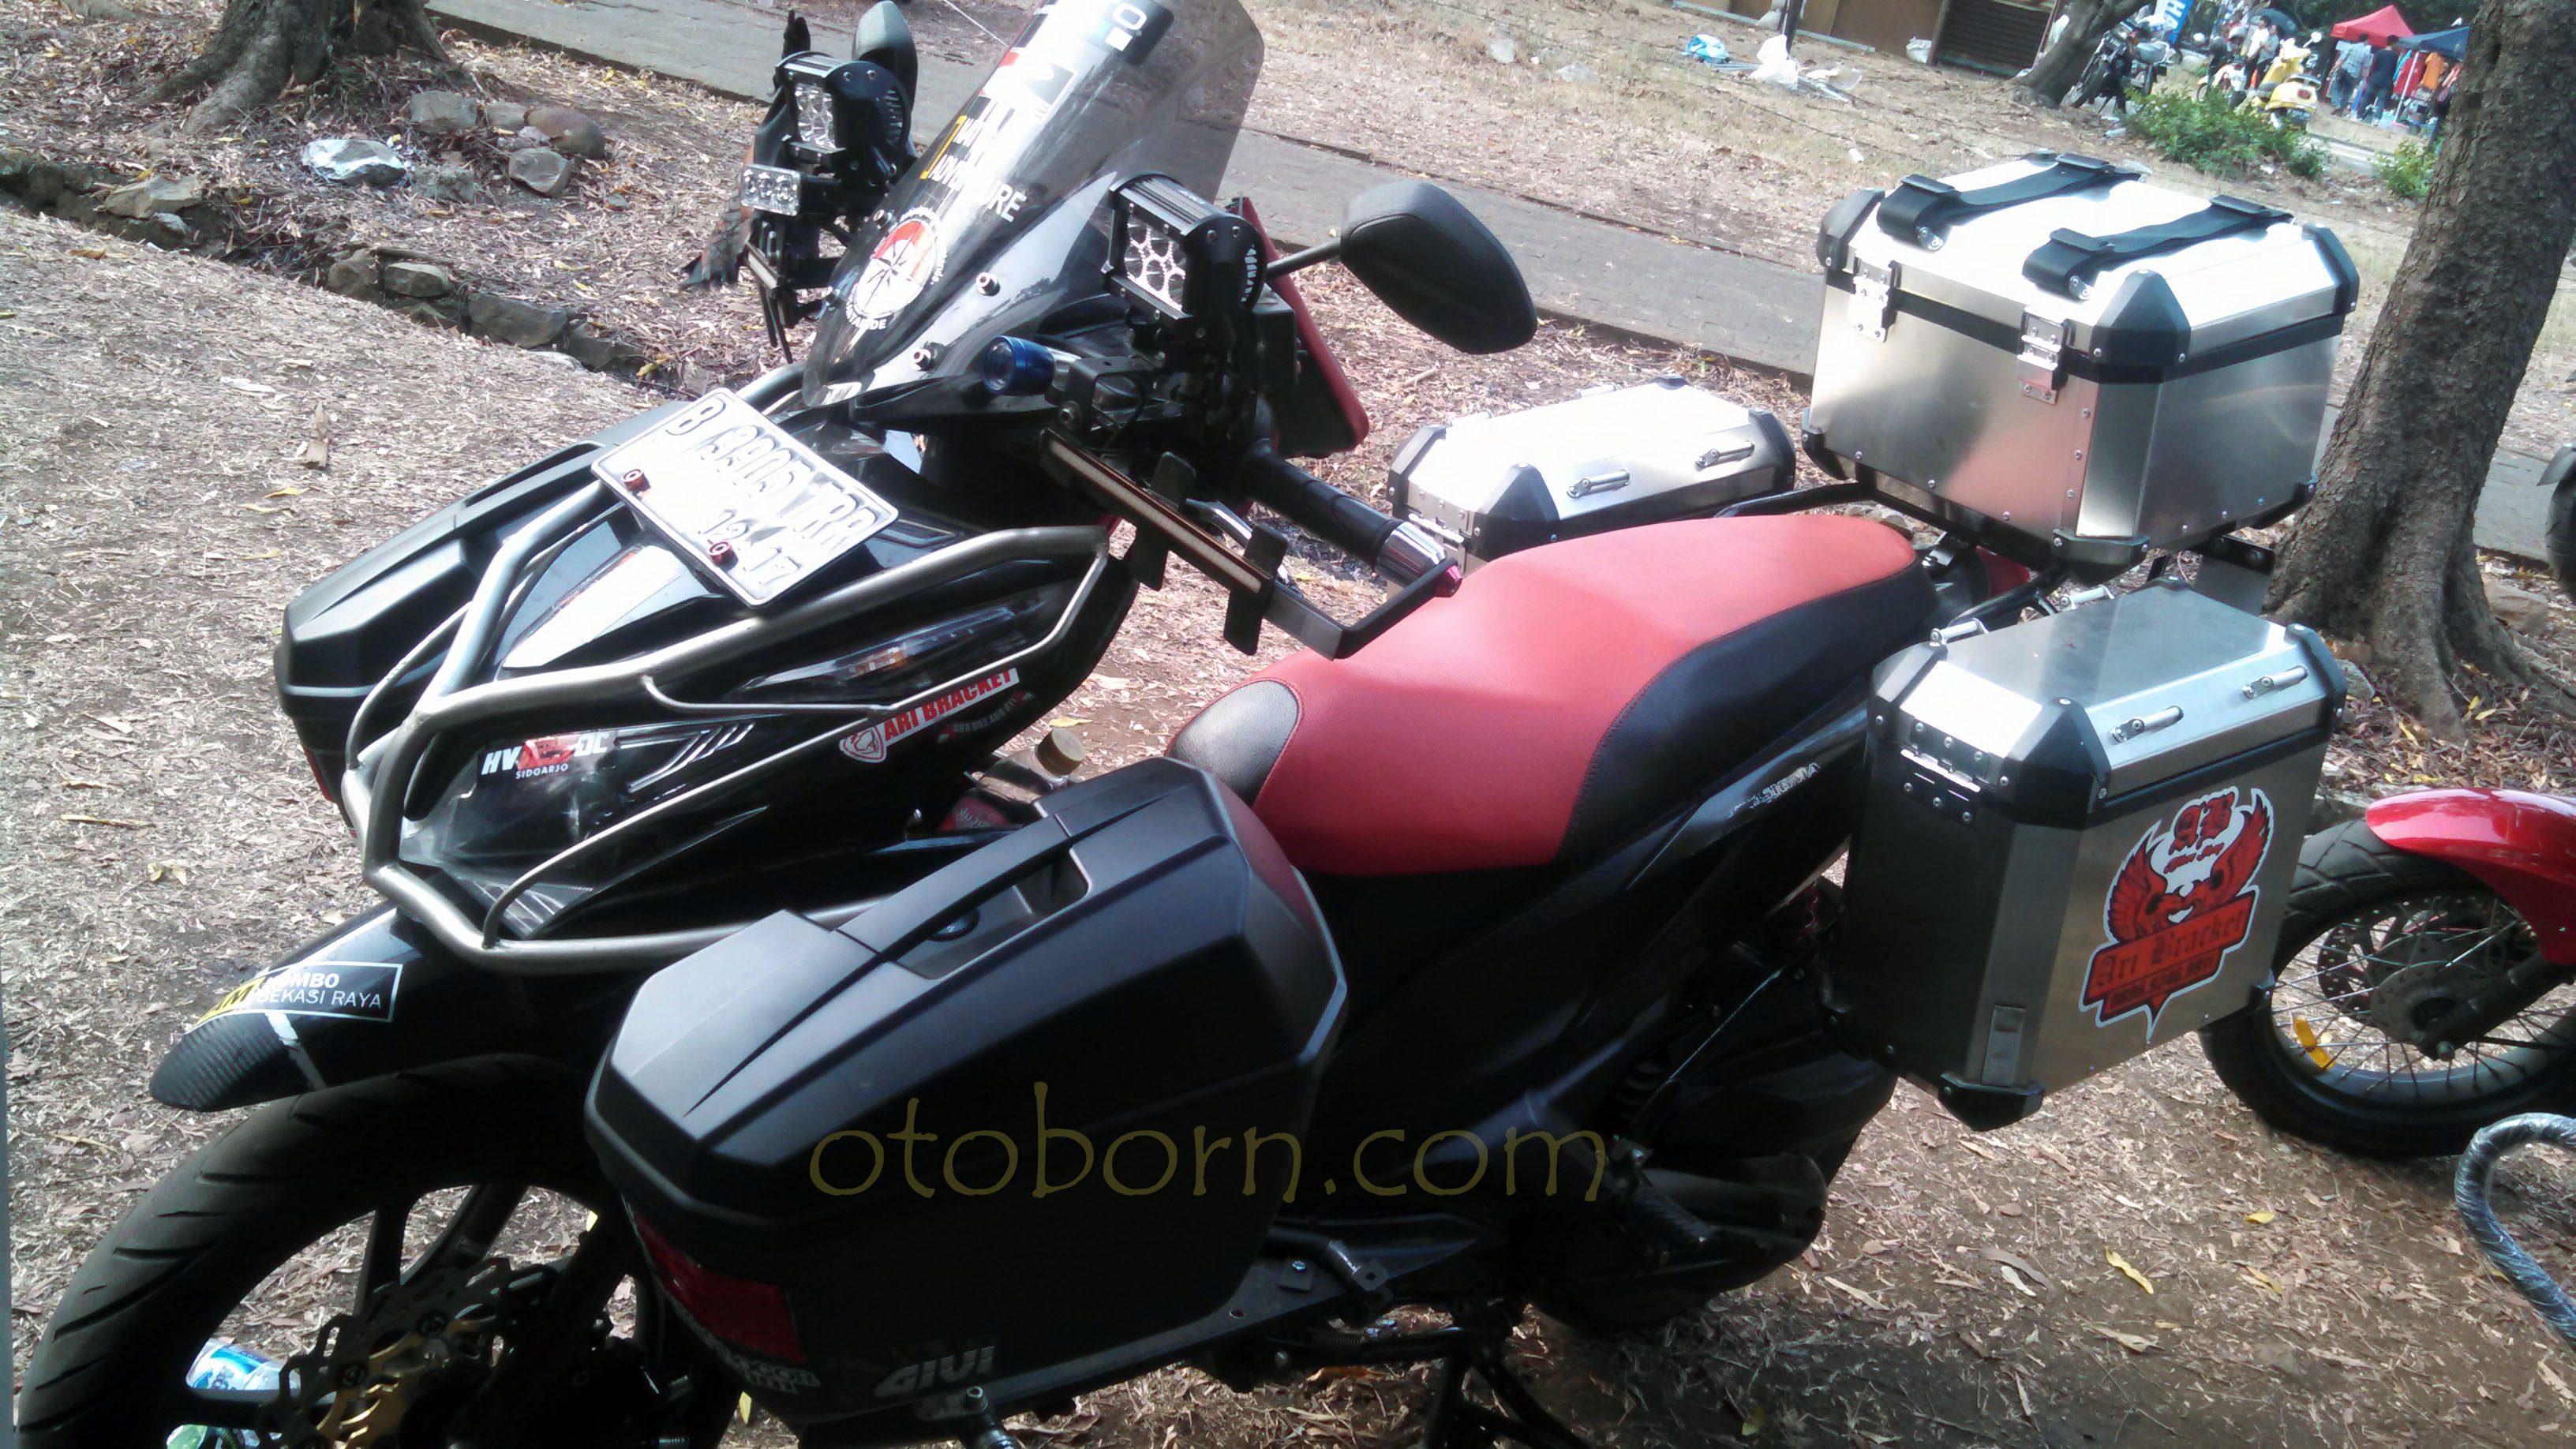 Modifikasi Vario 150 Full Box Kumpulan Modifikasi Motor Vario